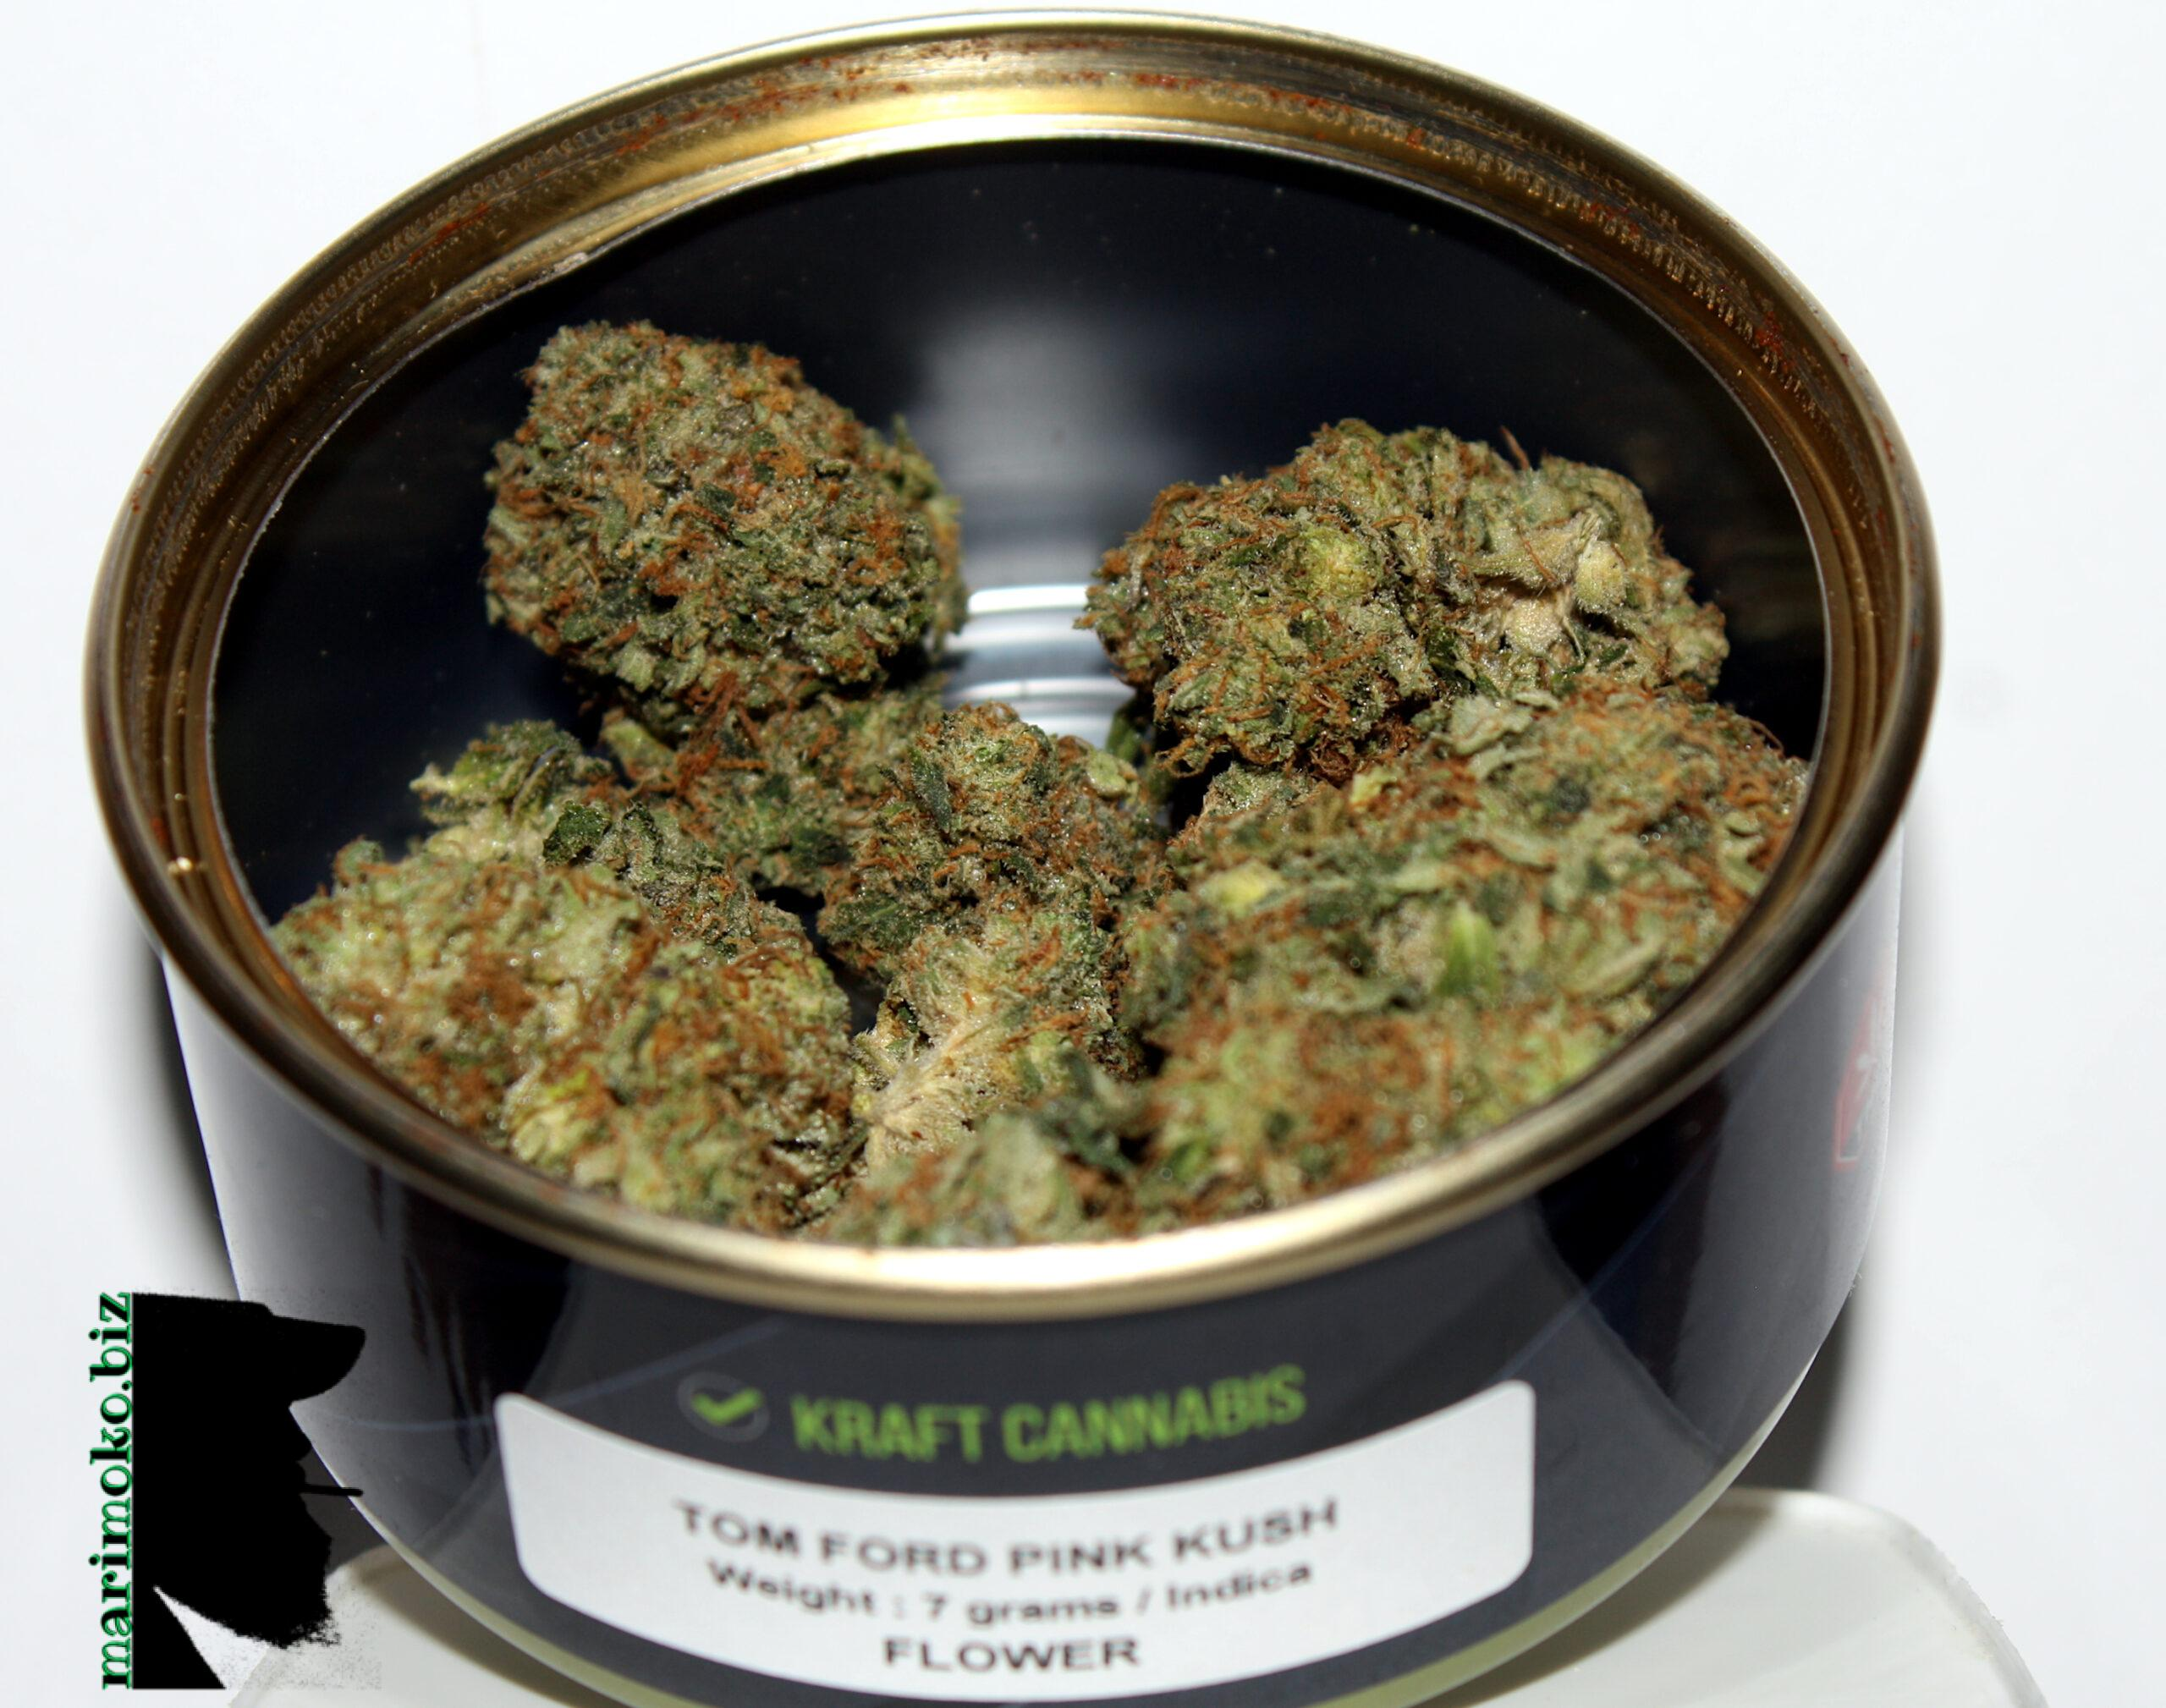 Pics & Videos • Tom Ford Pink Kush From DNMN